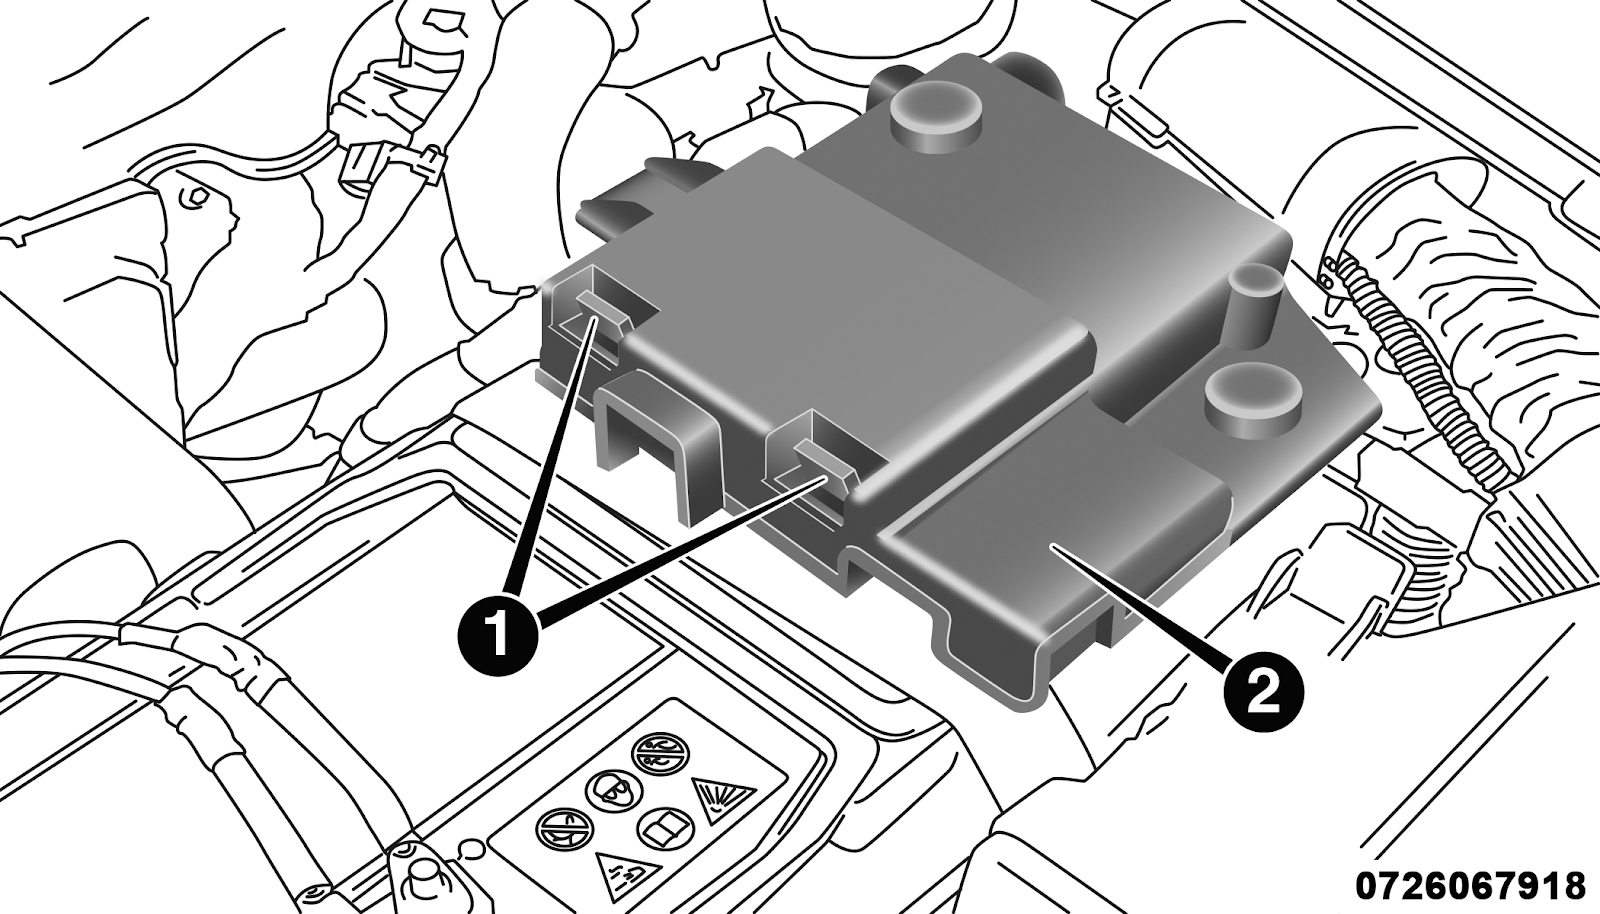 Battery Fuse Cover Location